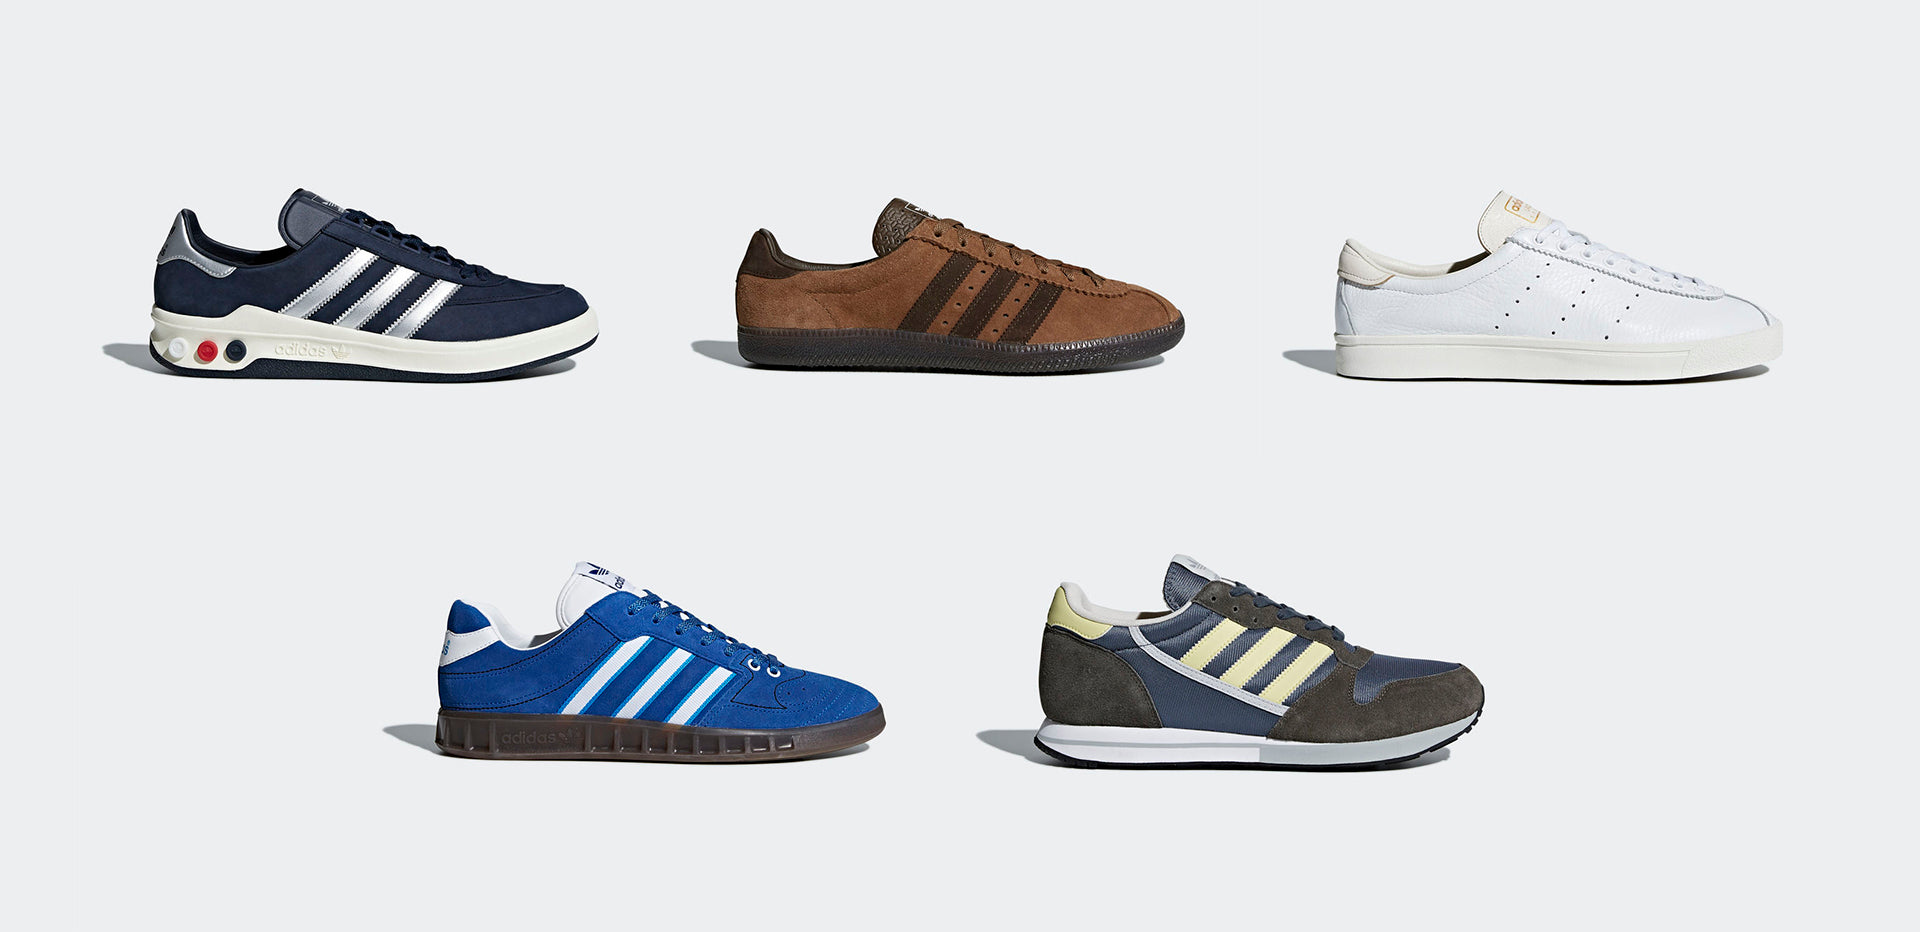 18a6318c71aa adidas Originals presents the latest collection of apparel